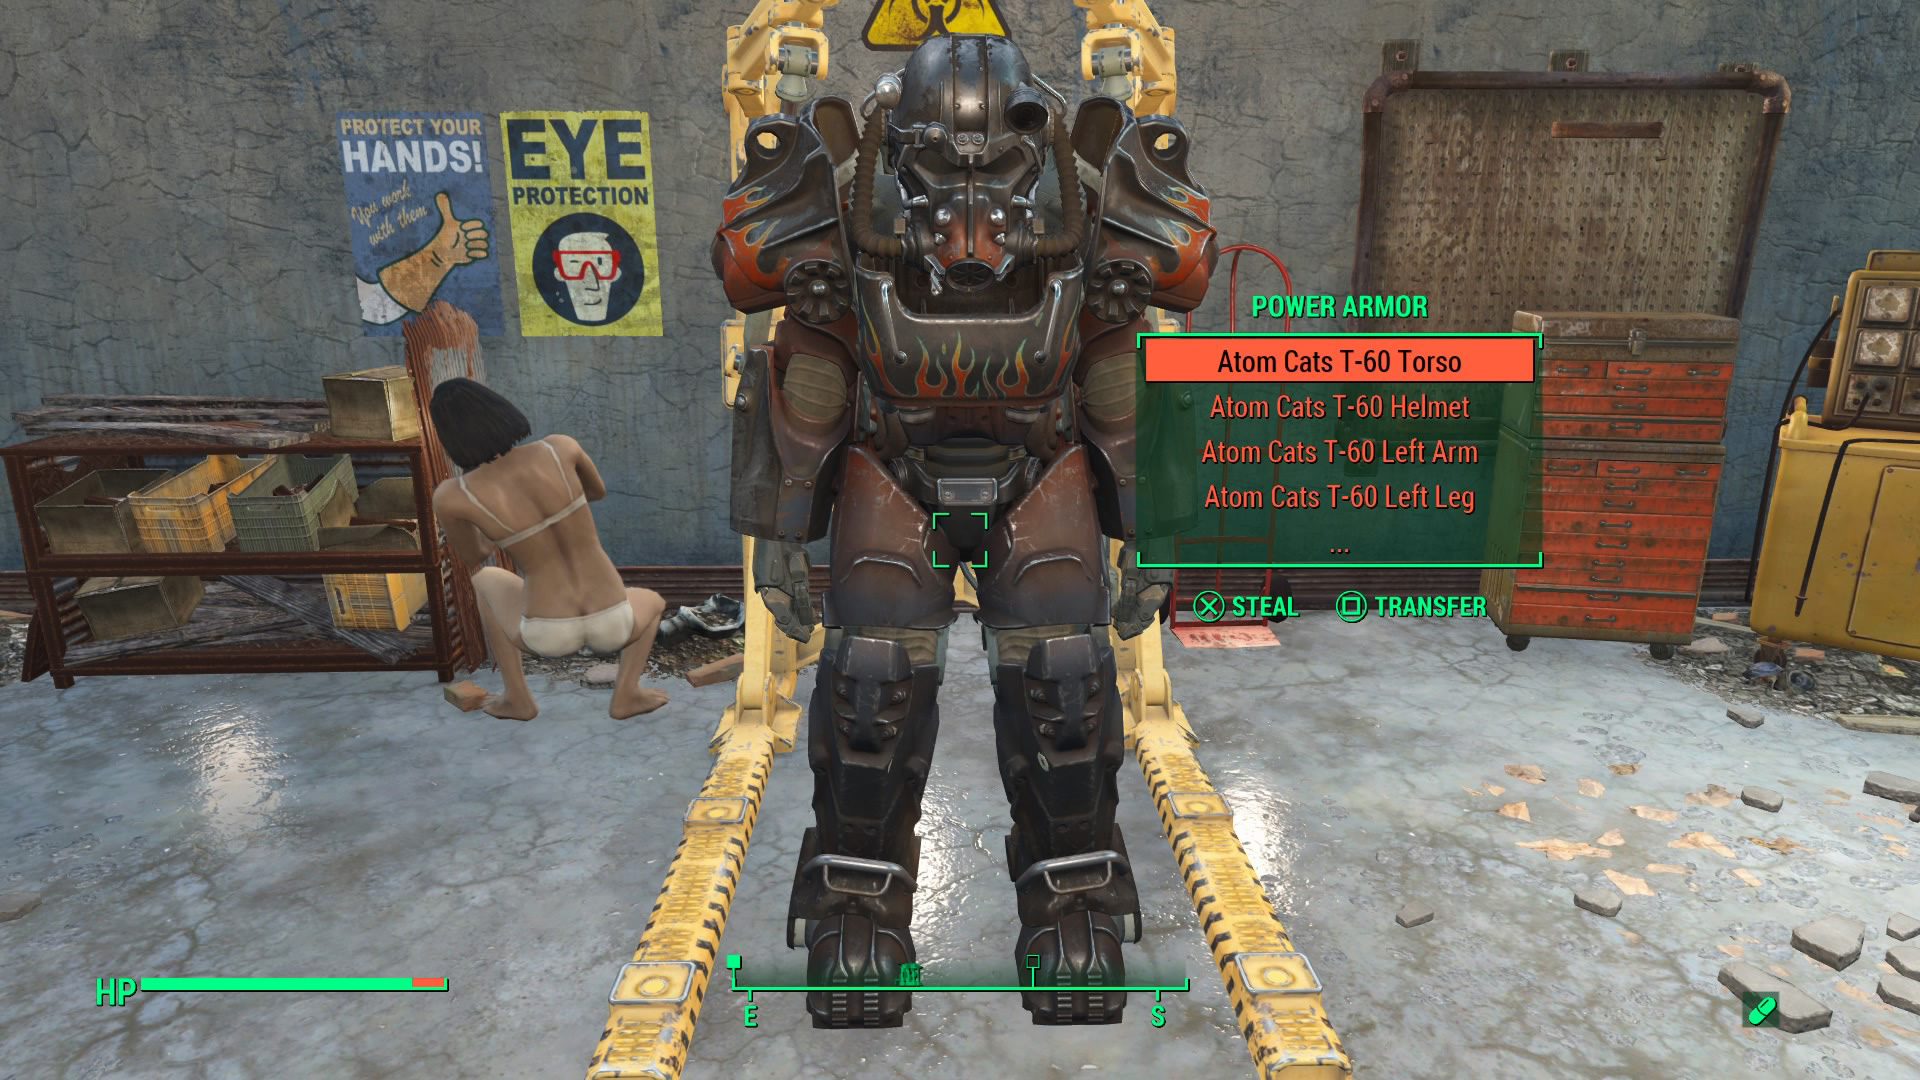 how to get atom cats power armor without stealing